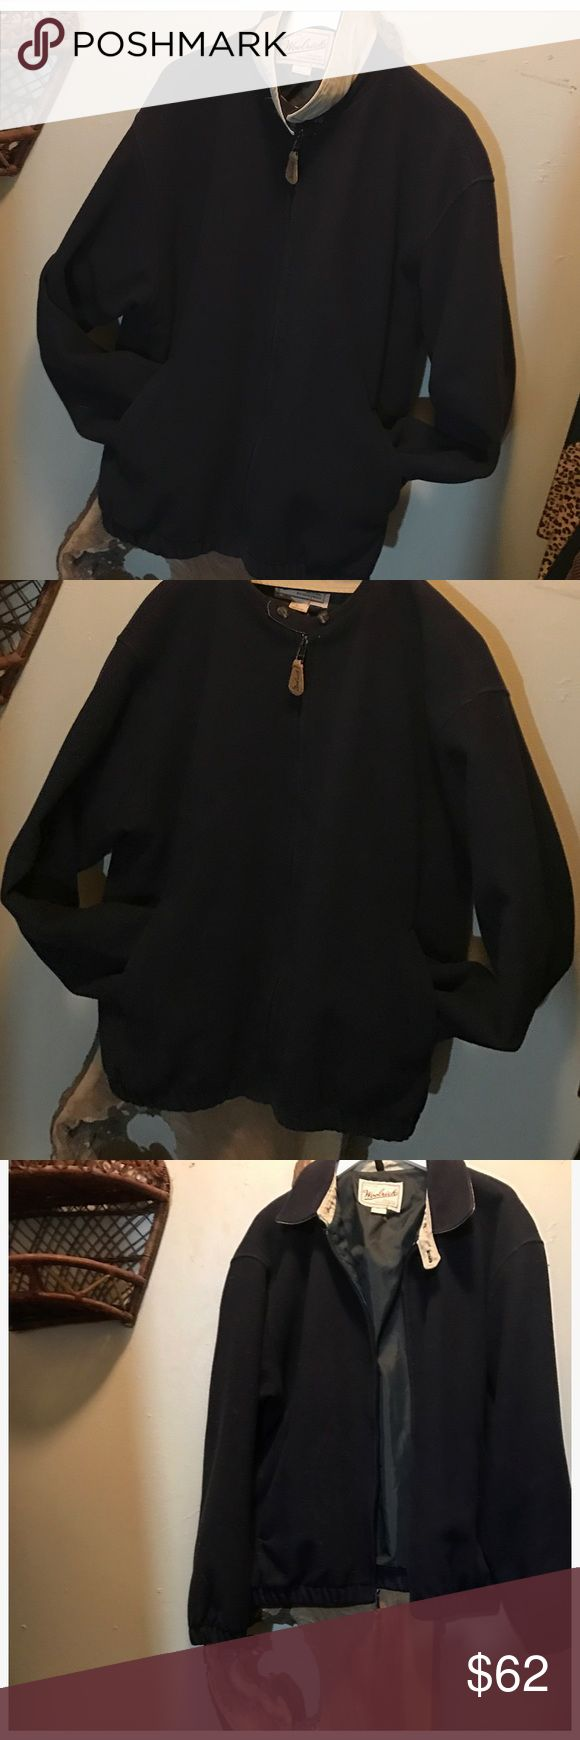 Vintage Woolrich 100% Wool Bomber Jacket Mint condition! Men's size Large. Features a hidden Zipper, khaki fold over collar, two snaps at the neck, pockets at the waist, rib knit sleeve cuffs and bottom hem, and a full satin lining. Quality, versatile and super warm jacket! Woolrich Jackets & Coats